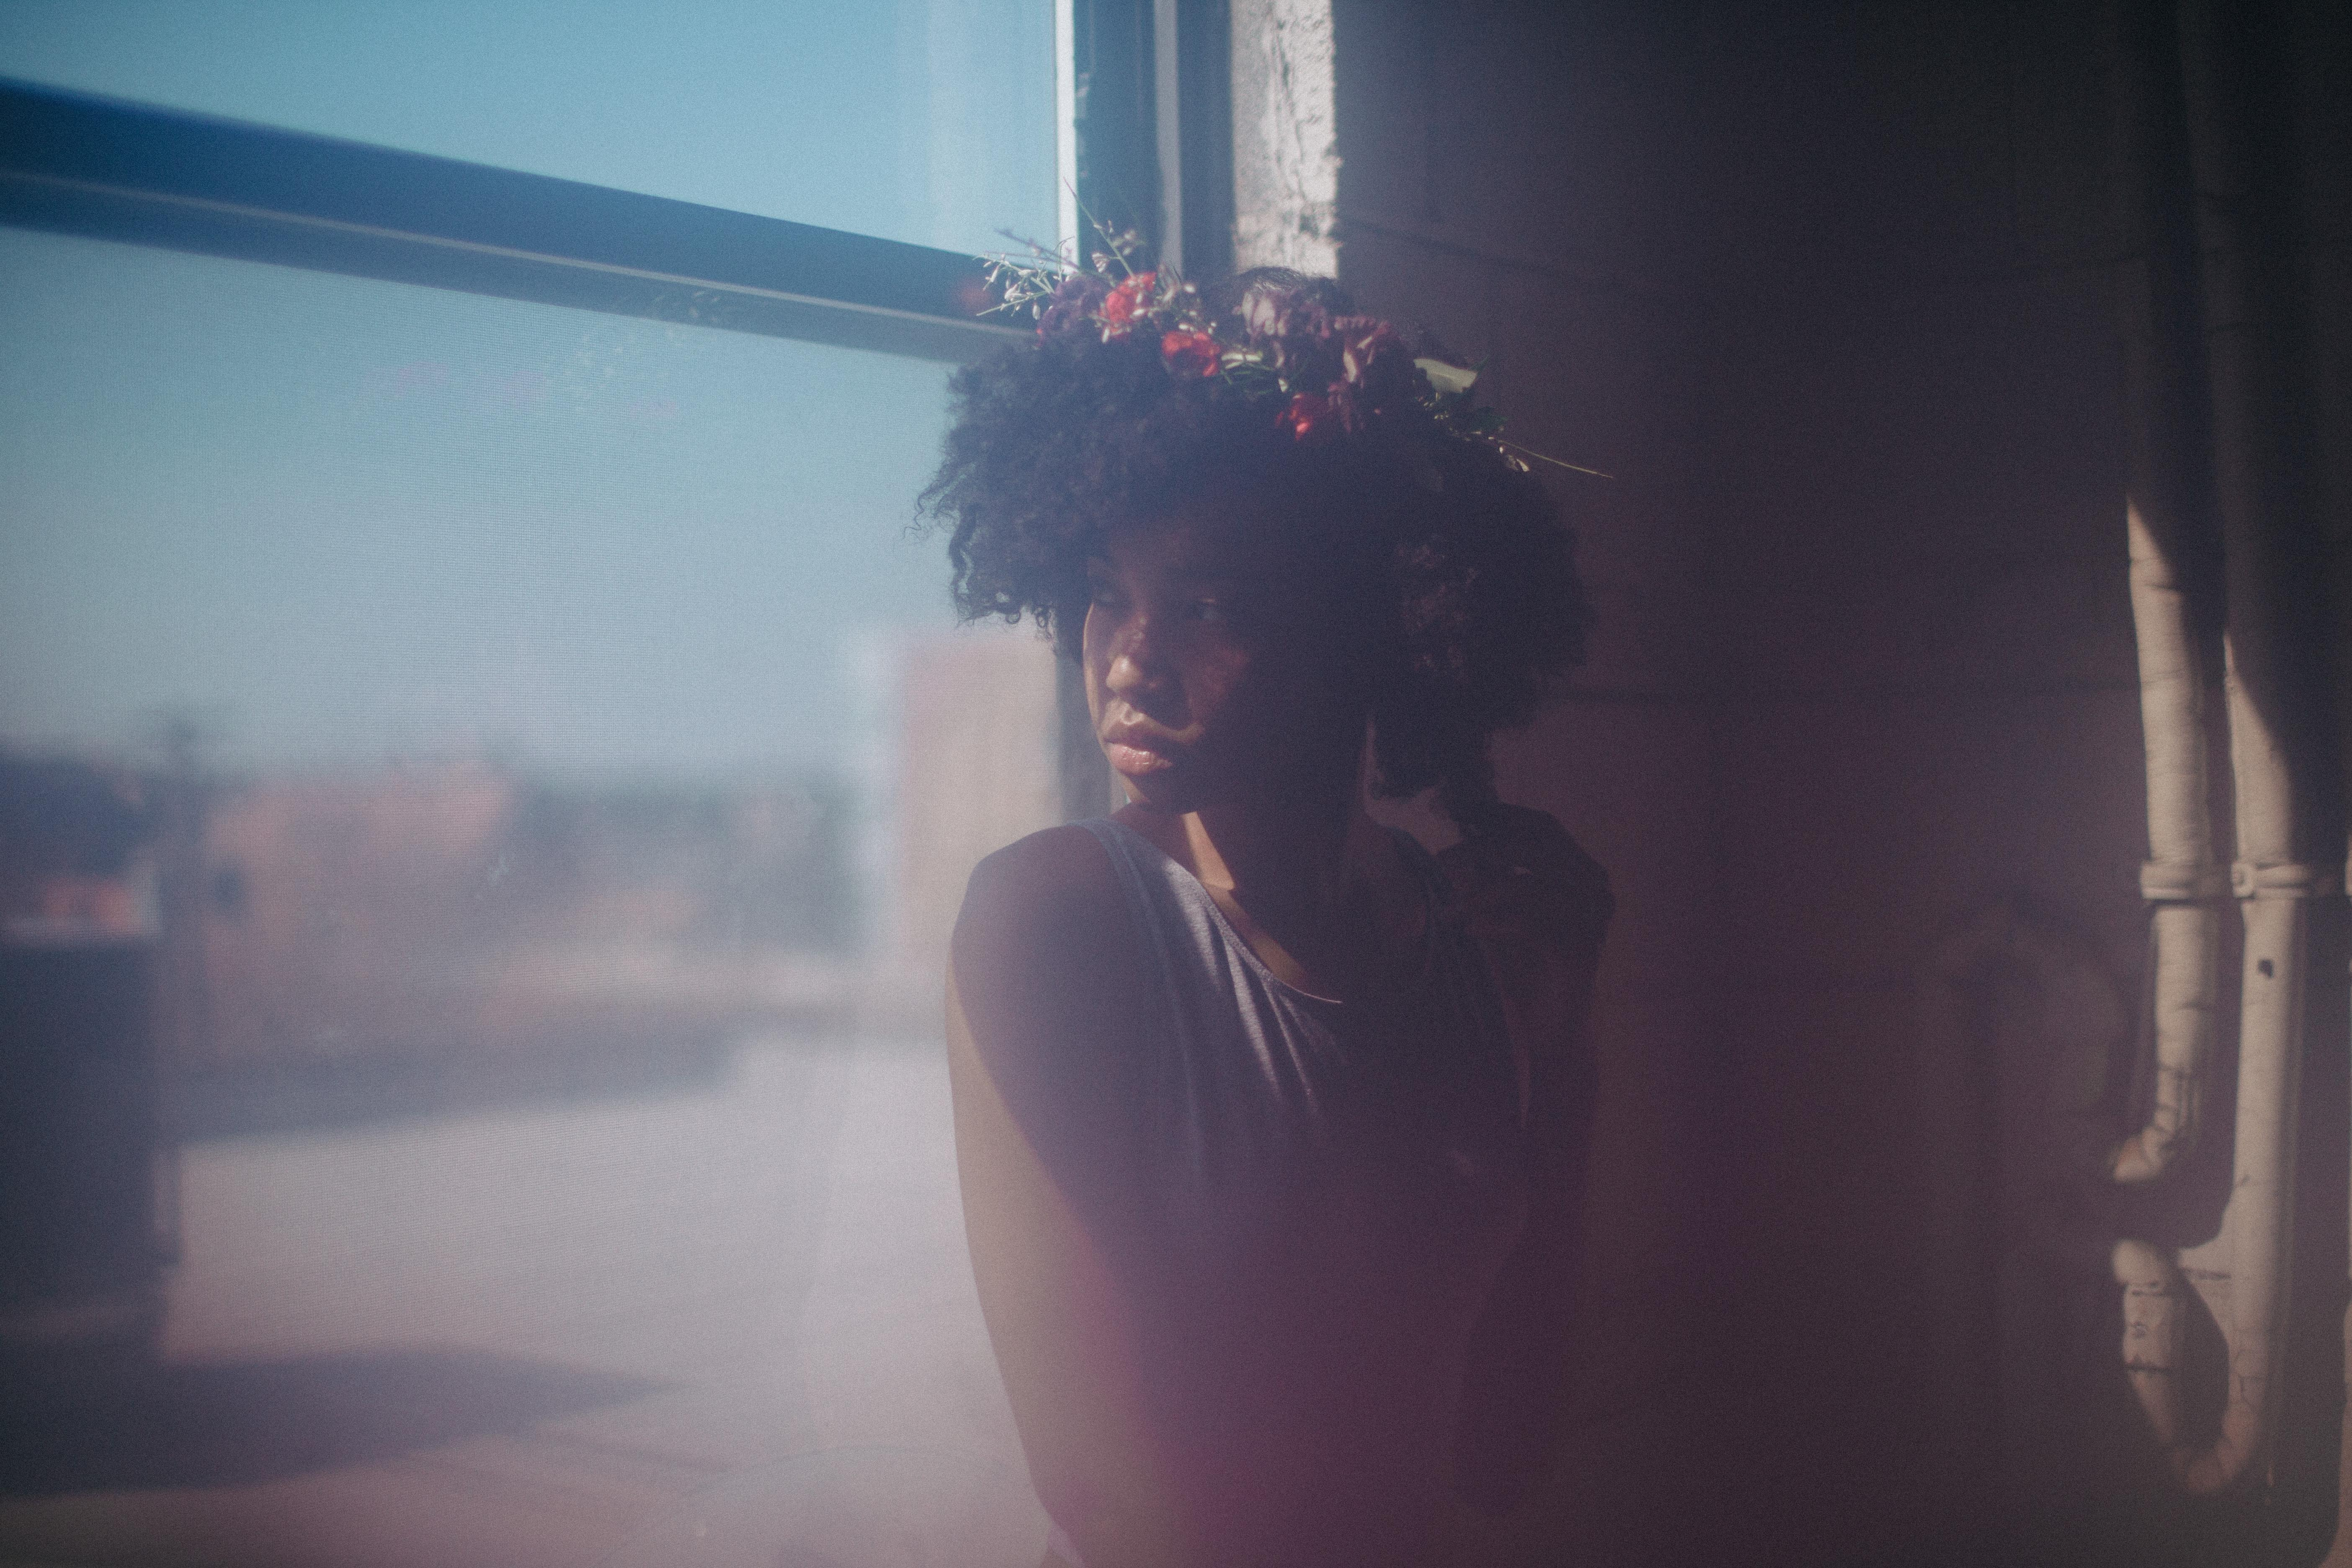 A young black woman, wearing a wreath of flowers in her hair and sitting in a window, turns to look over her shoulder. A misty haze slightly obscures the image.